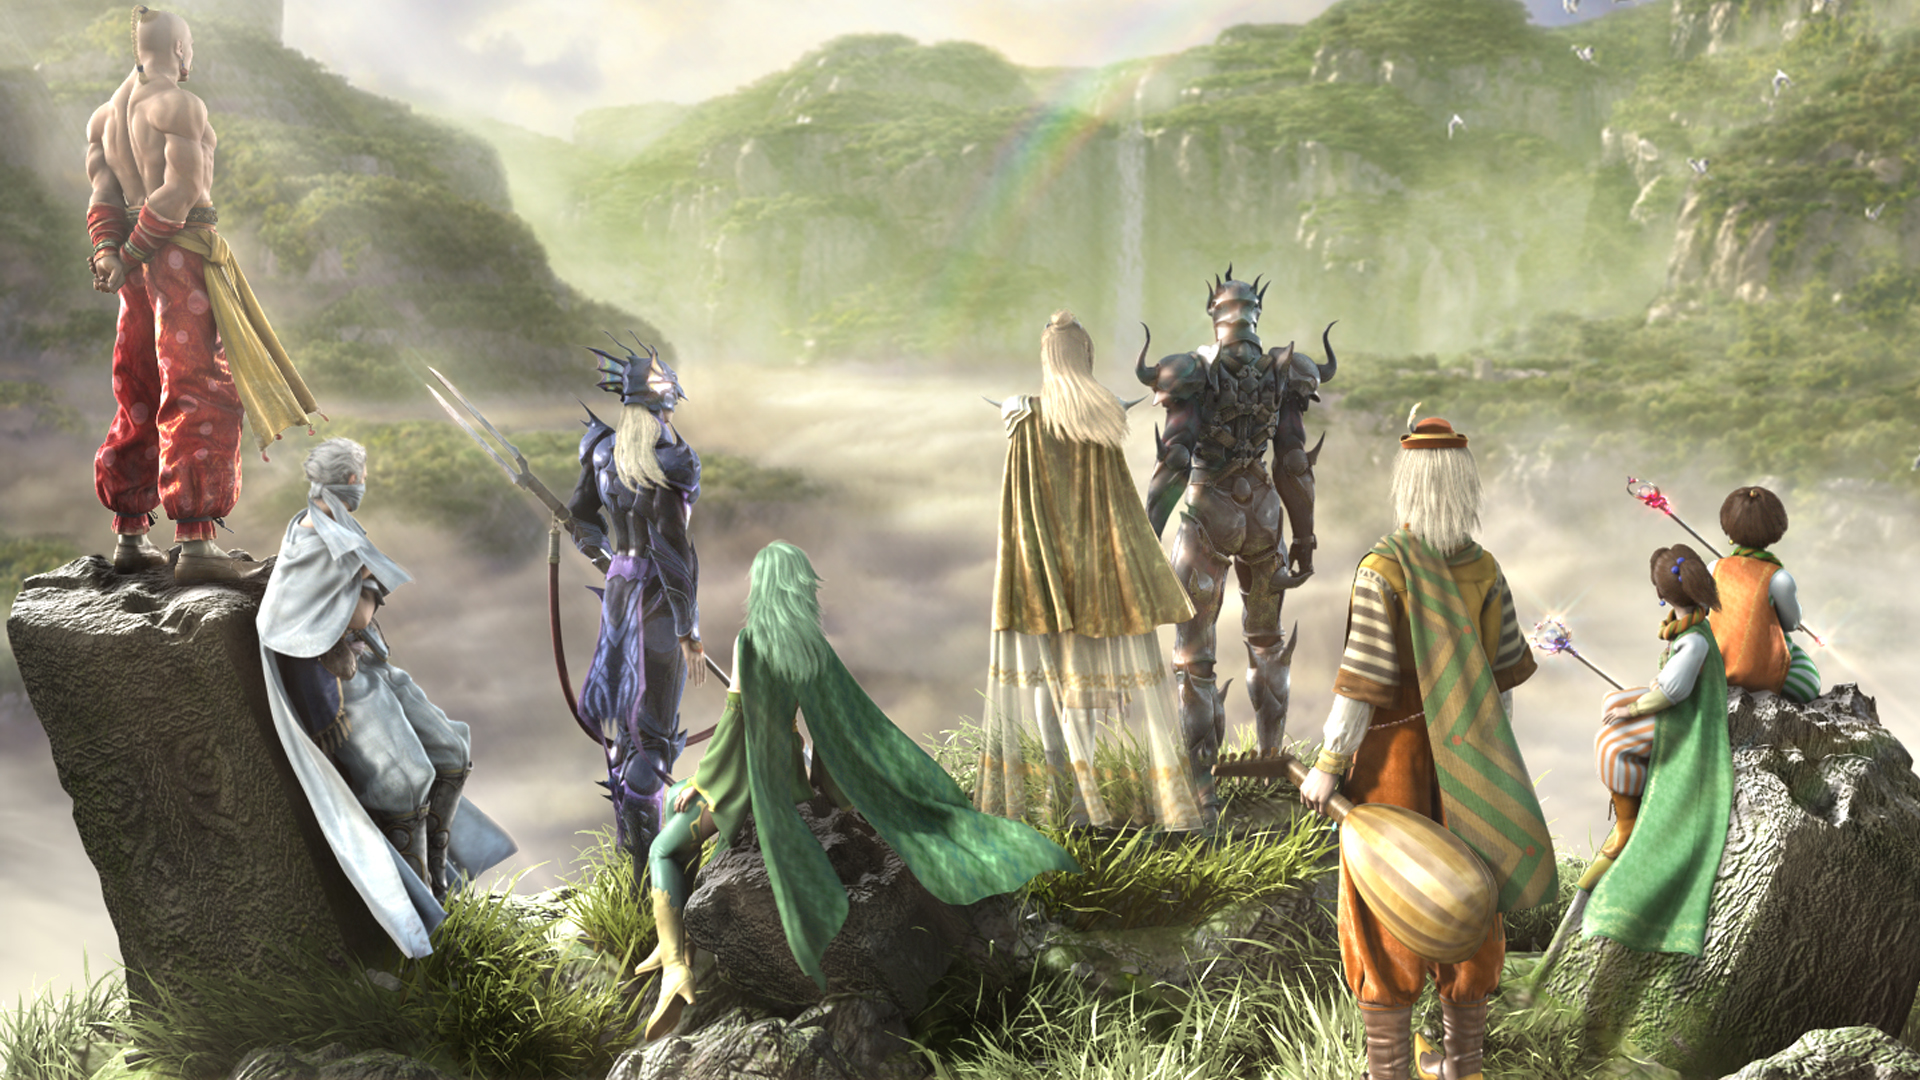 Final Fantasy IV Wallpaper 009 – The Gathering